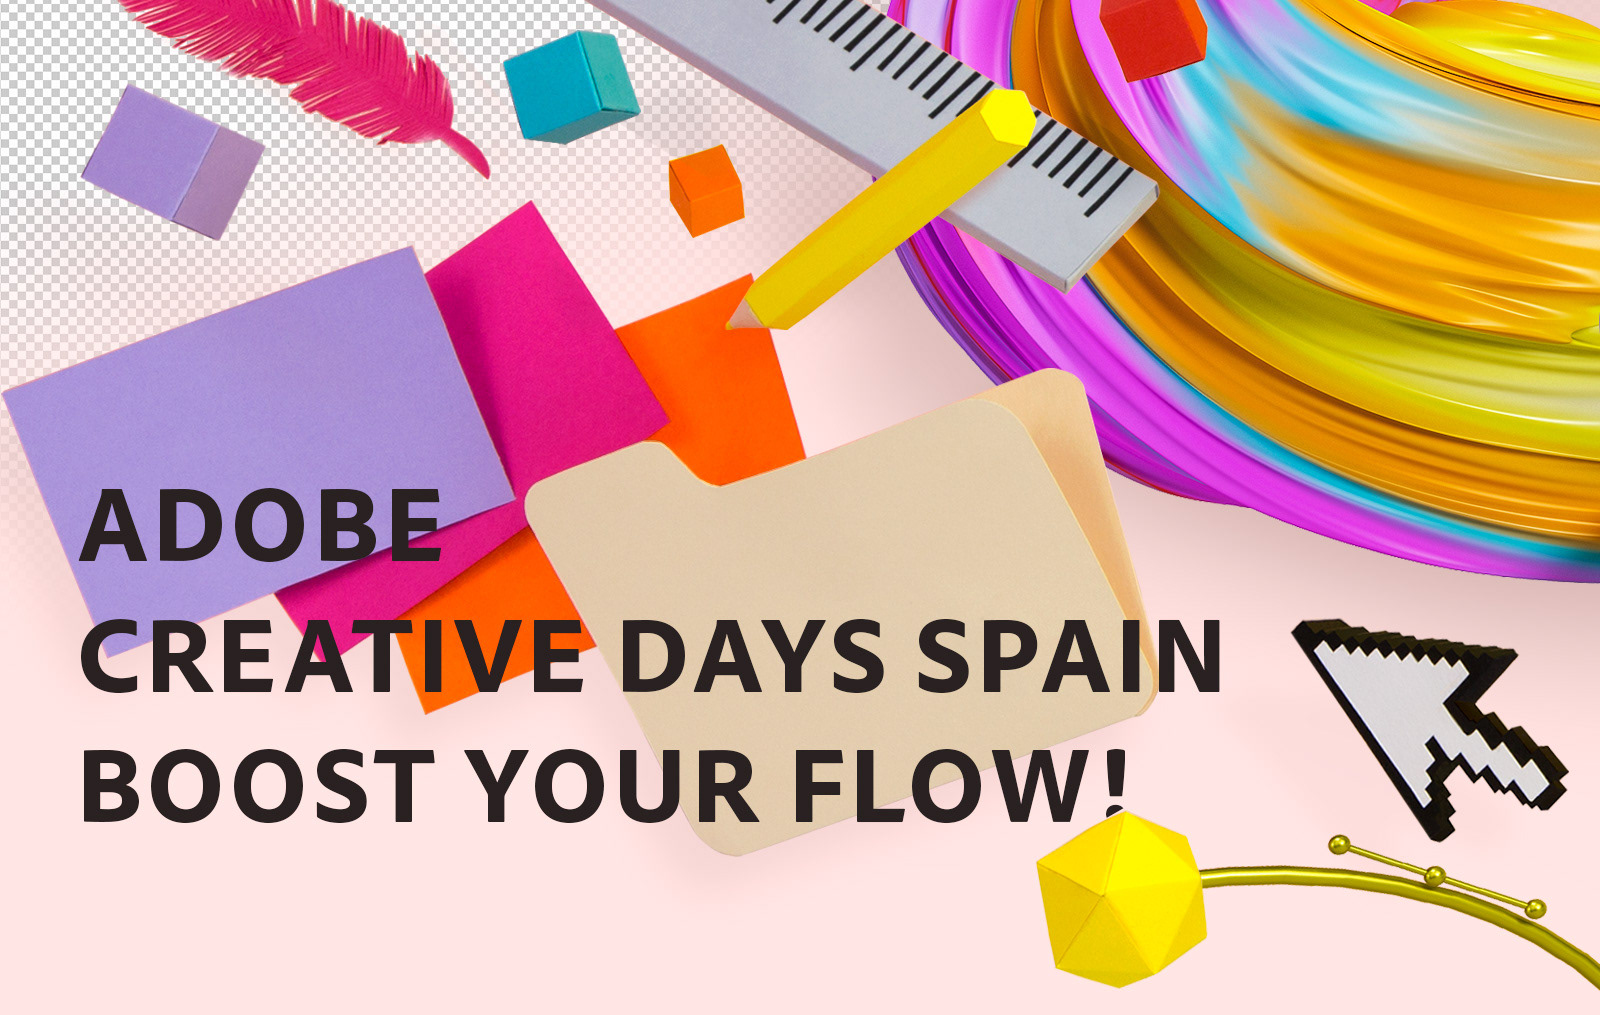 Adobe Creative Days Spain - Boost Your Flow Artwork